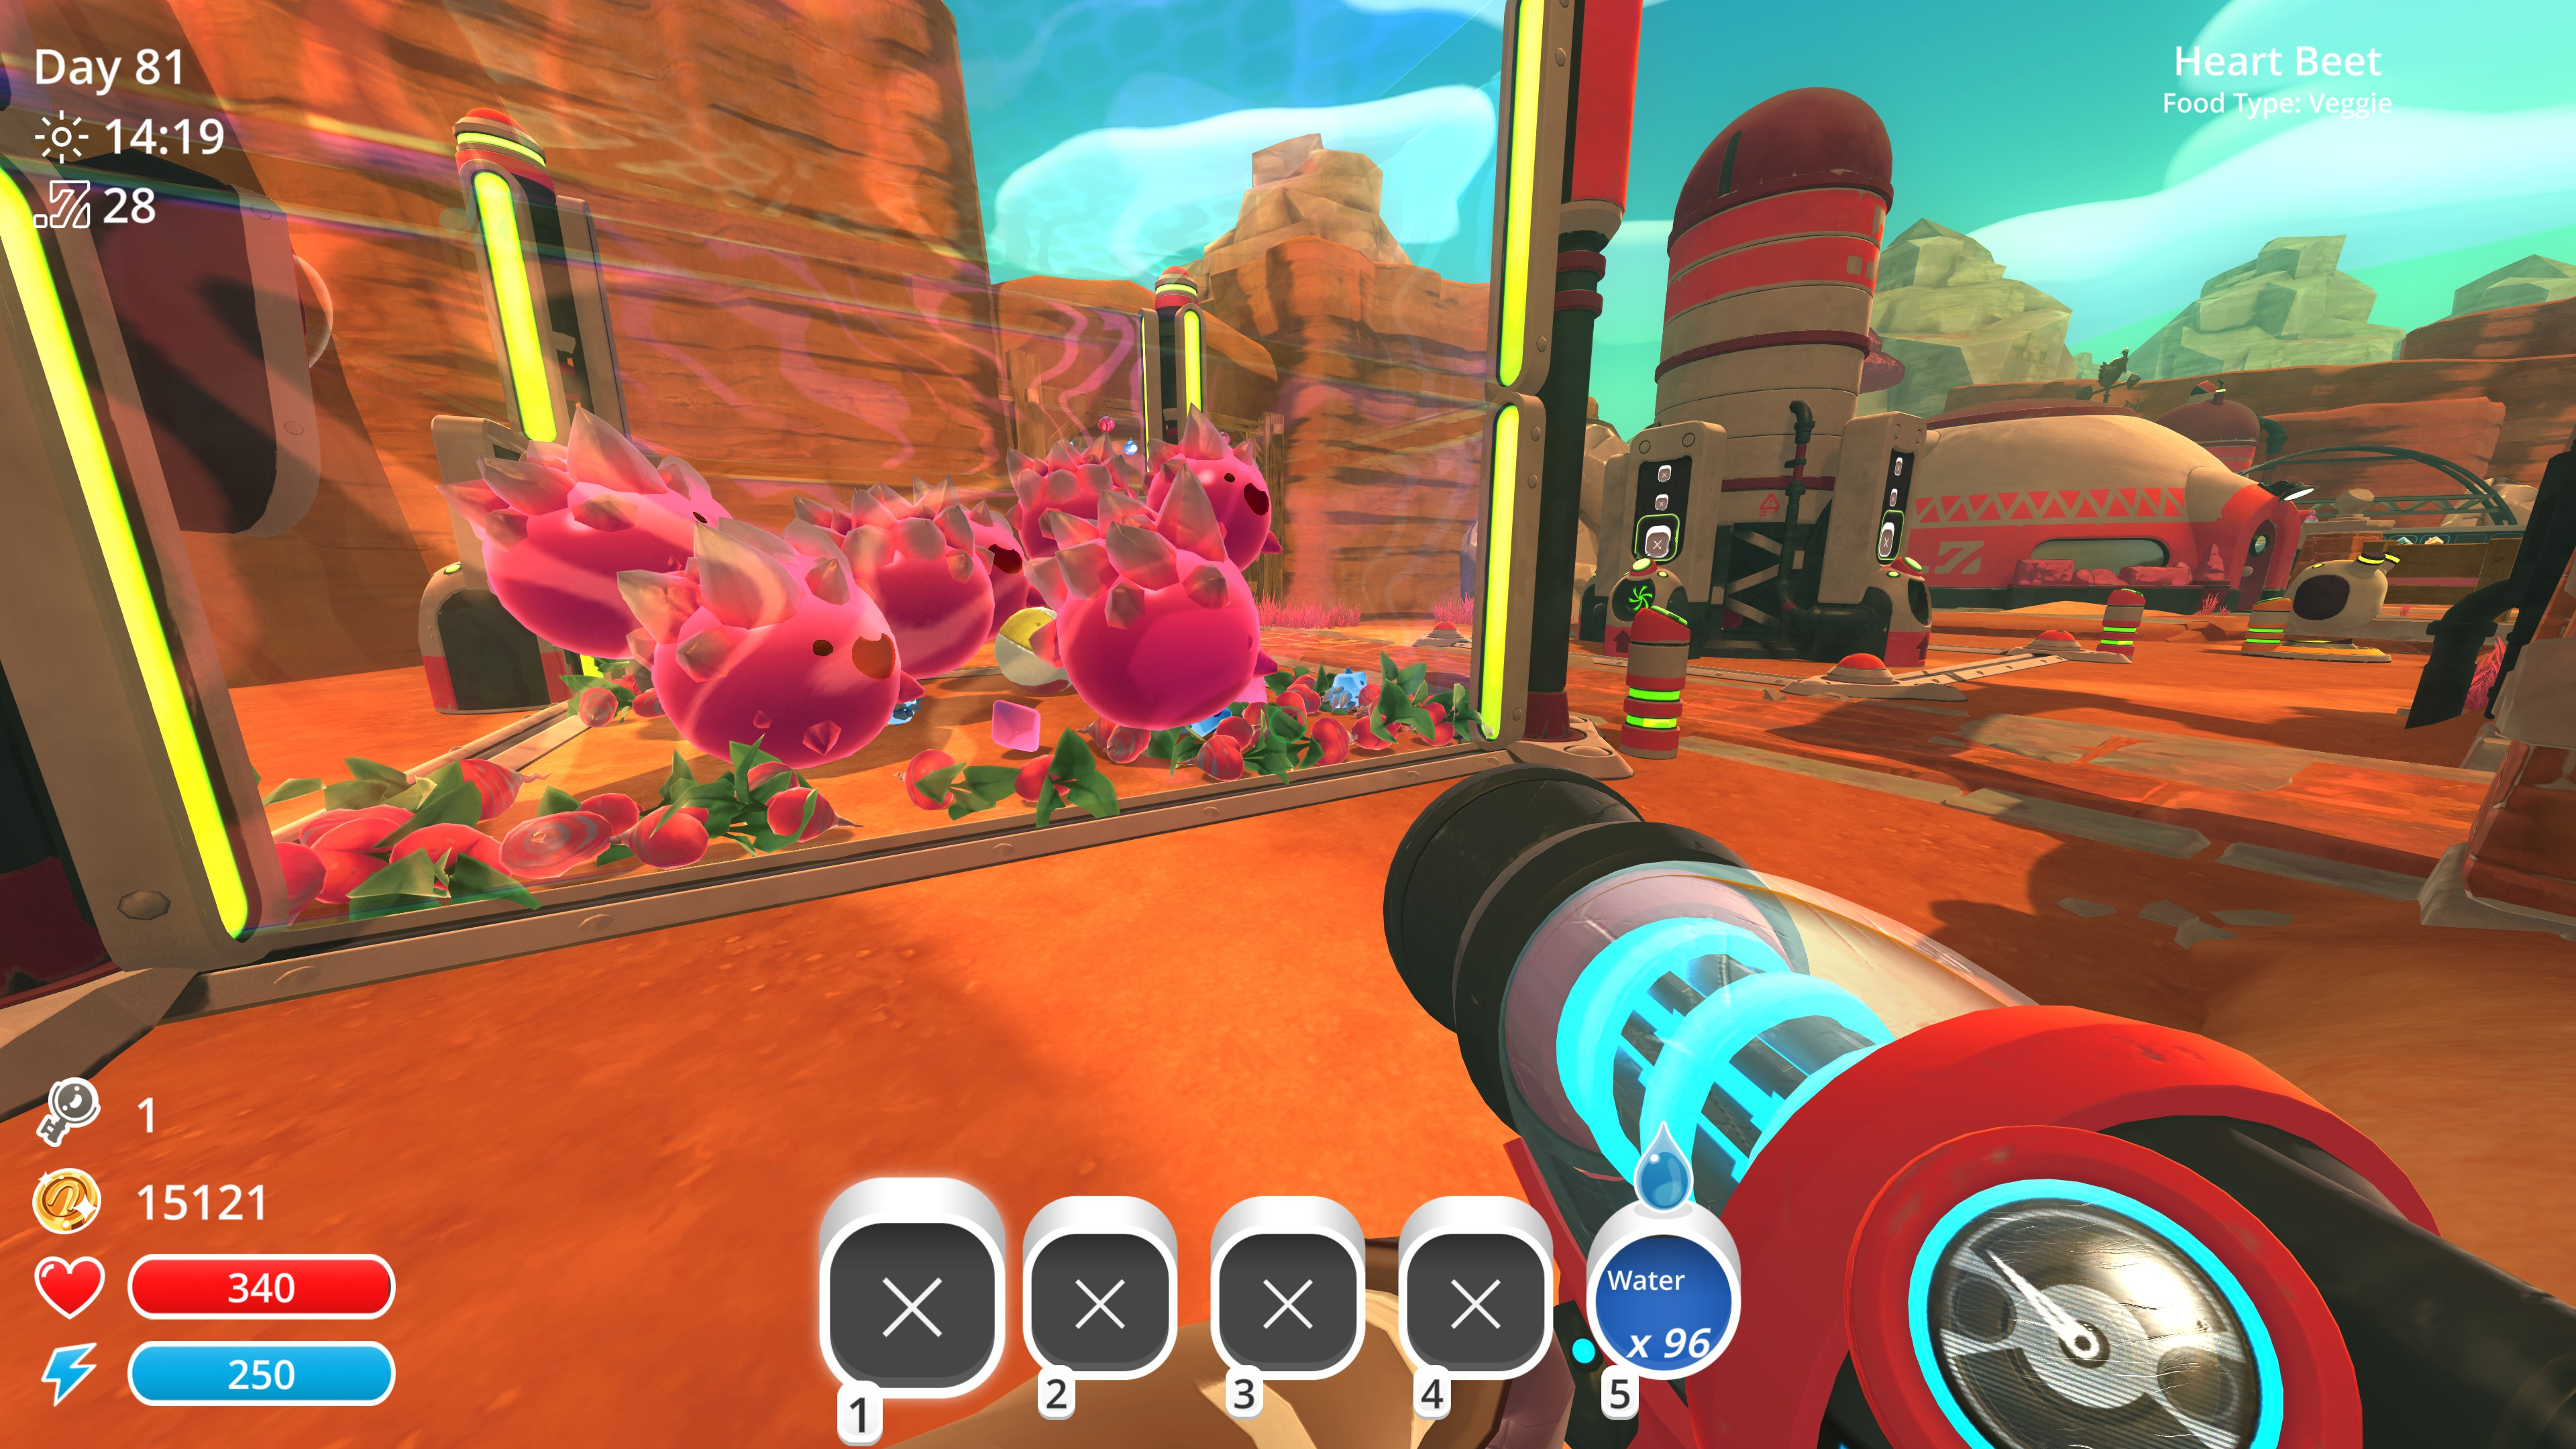 player stands before a large corral full of pink spiky slimes with big smiles. radishes cover the floor and a silo and house stand in the background.